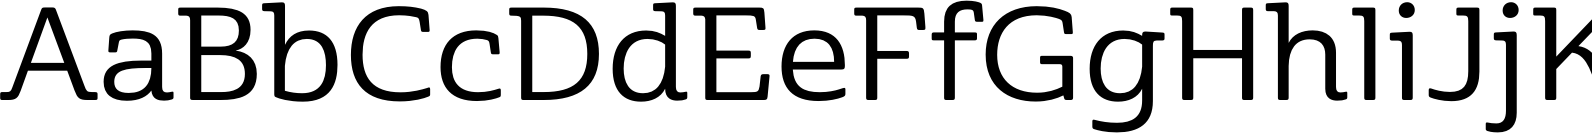 Cabrito Semi Ext Medium Font